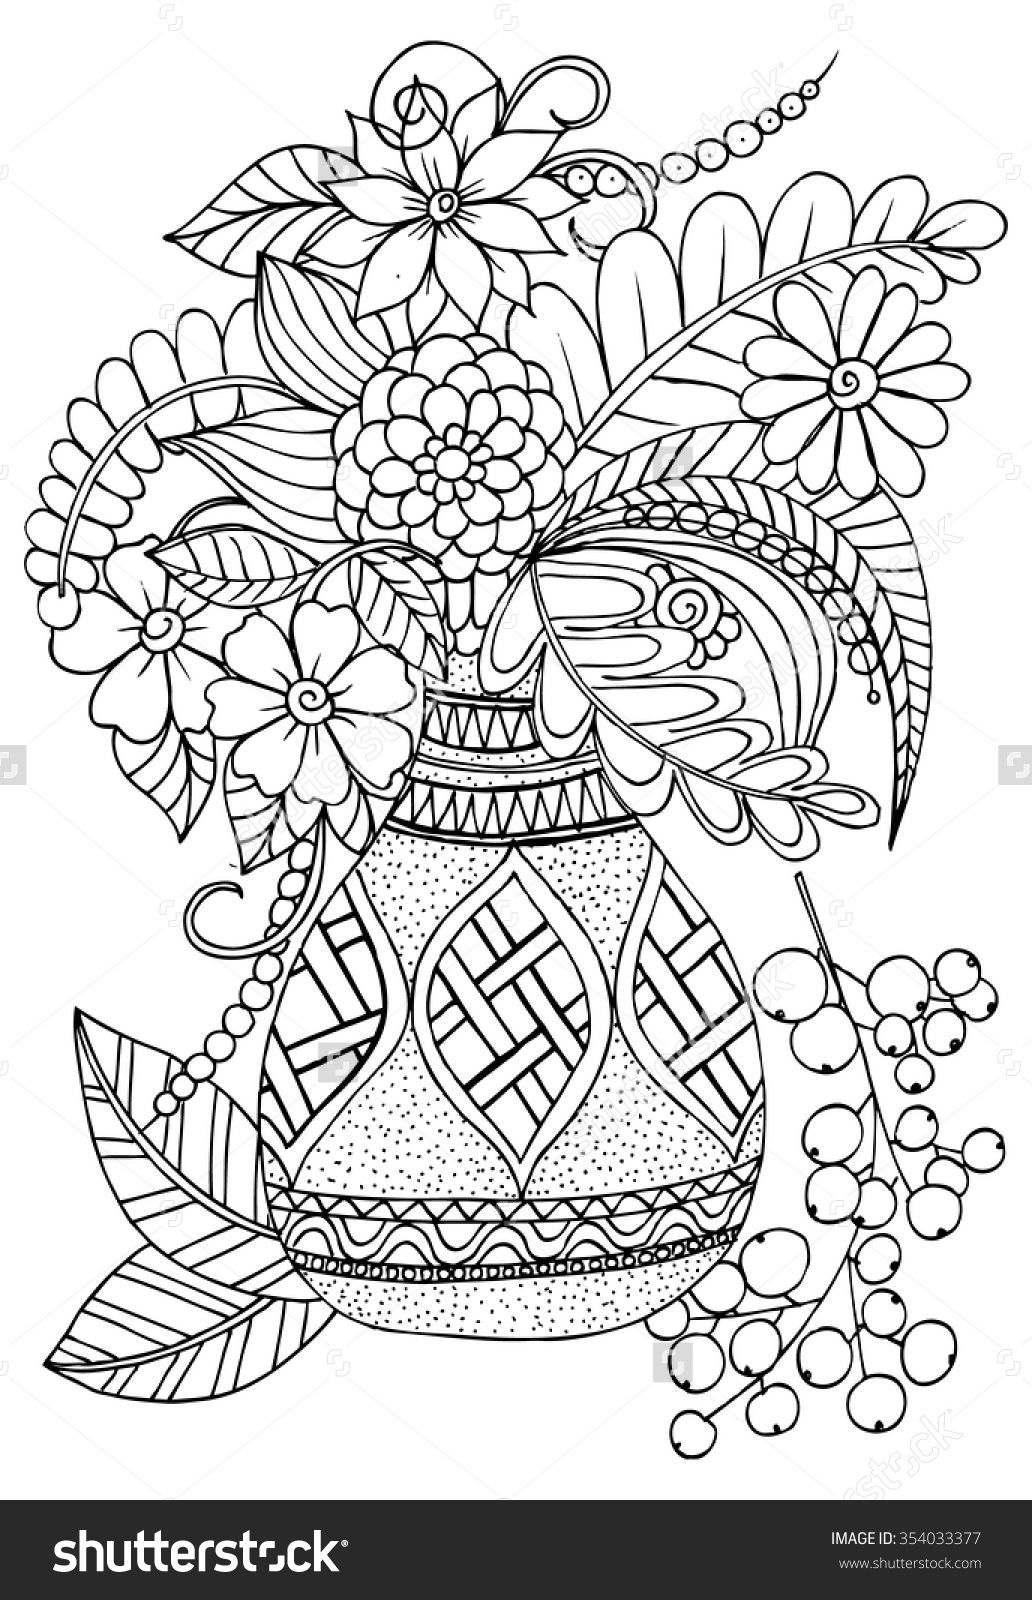 Floral vase colouring page | Coloring pages, Flower coloring ...